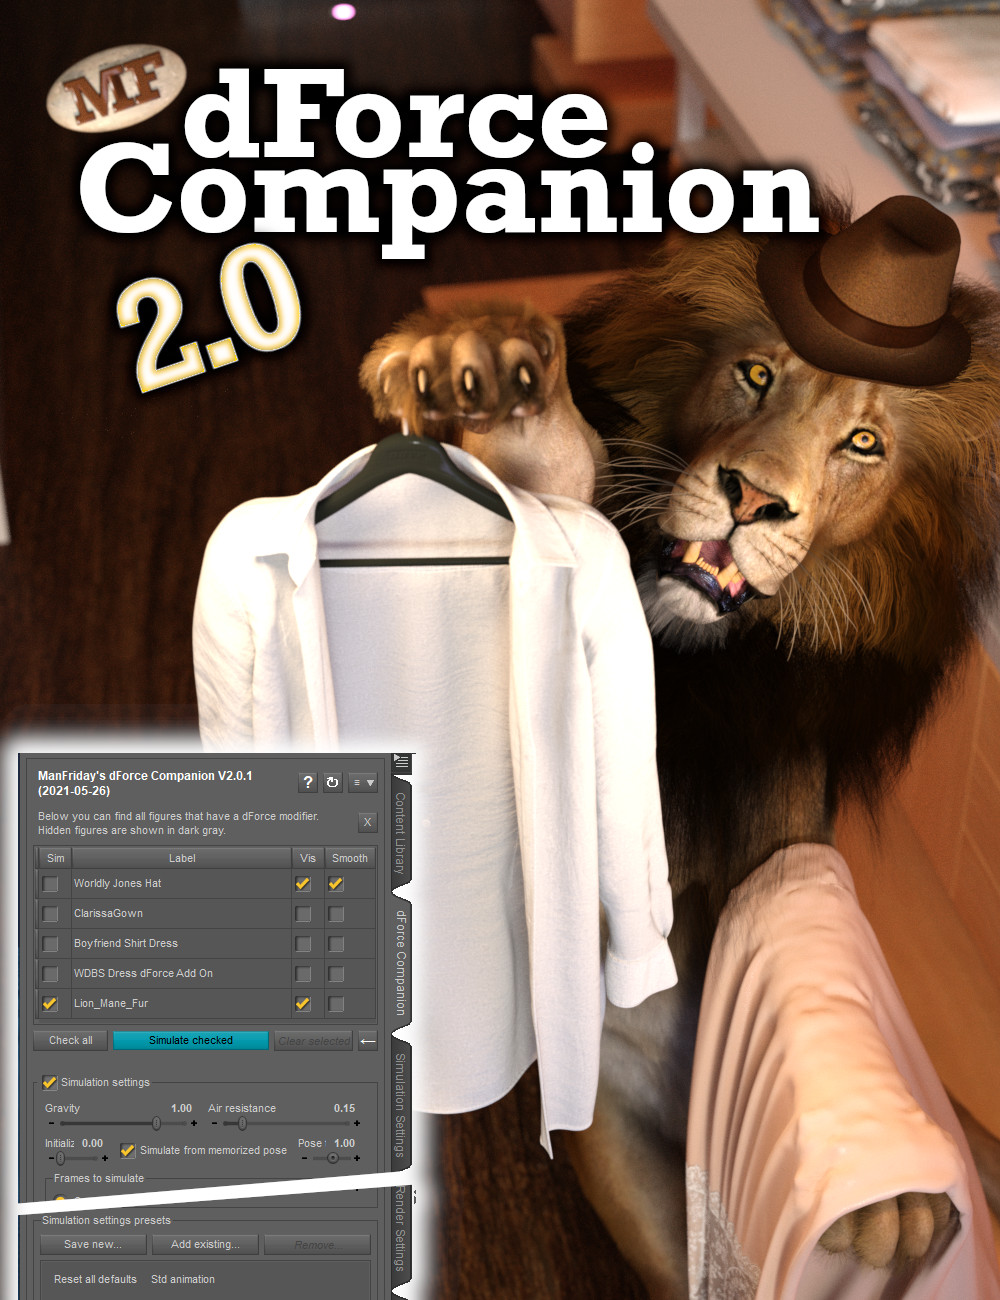 dForce Companion 2.0 by: ManFriday, 3D Models by Daz 3D